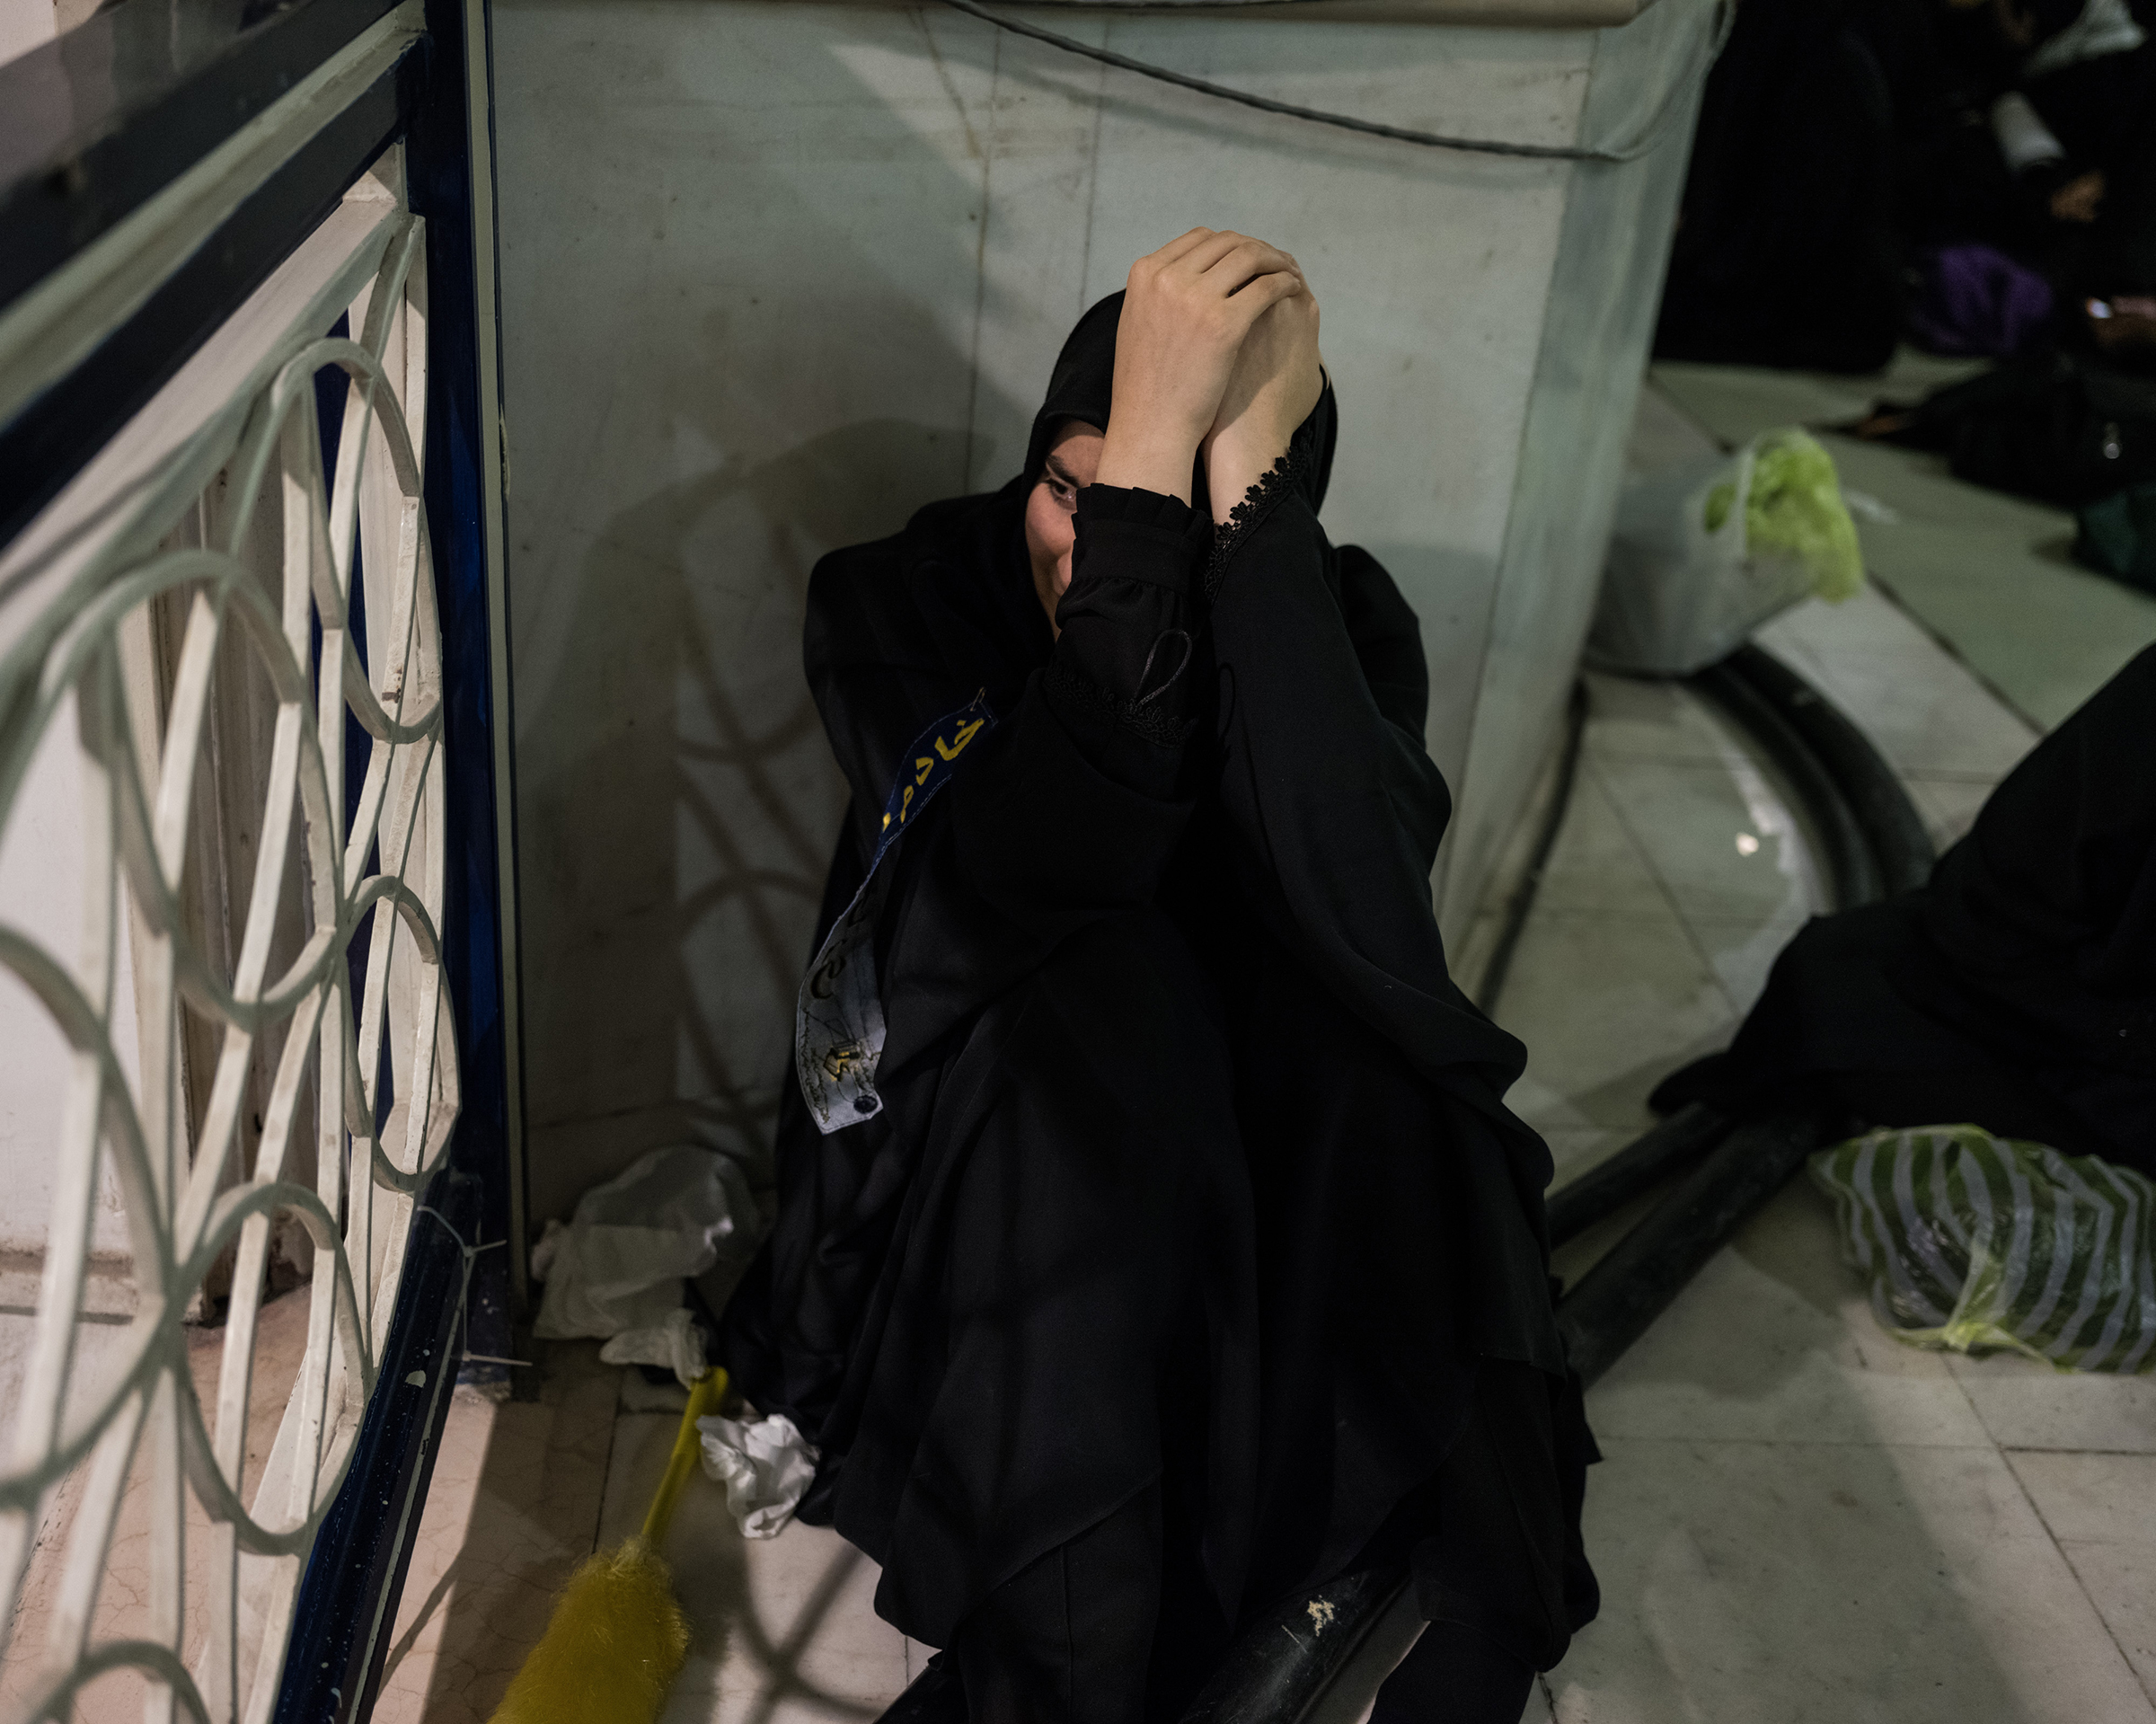 A mourner's private moment in Tehran.